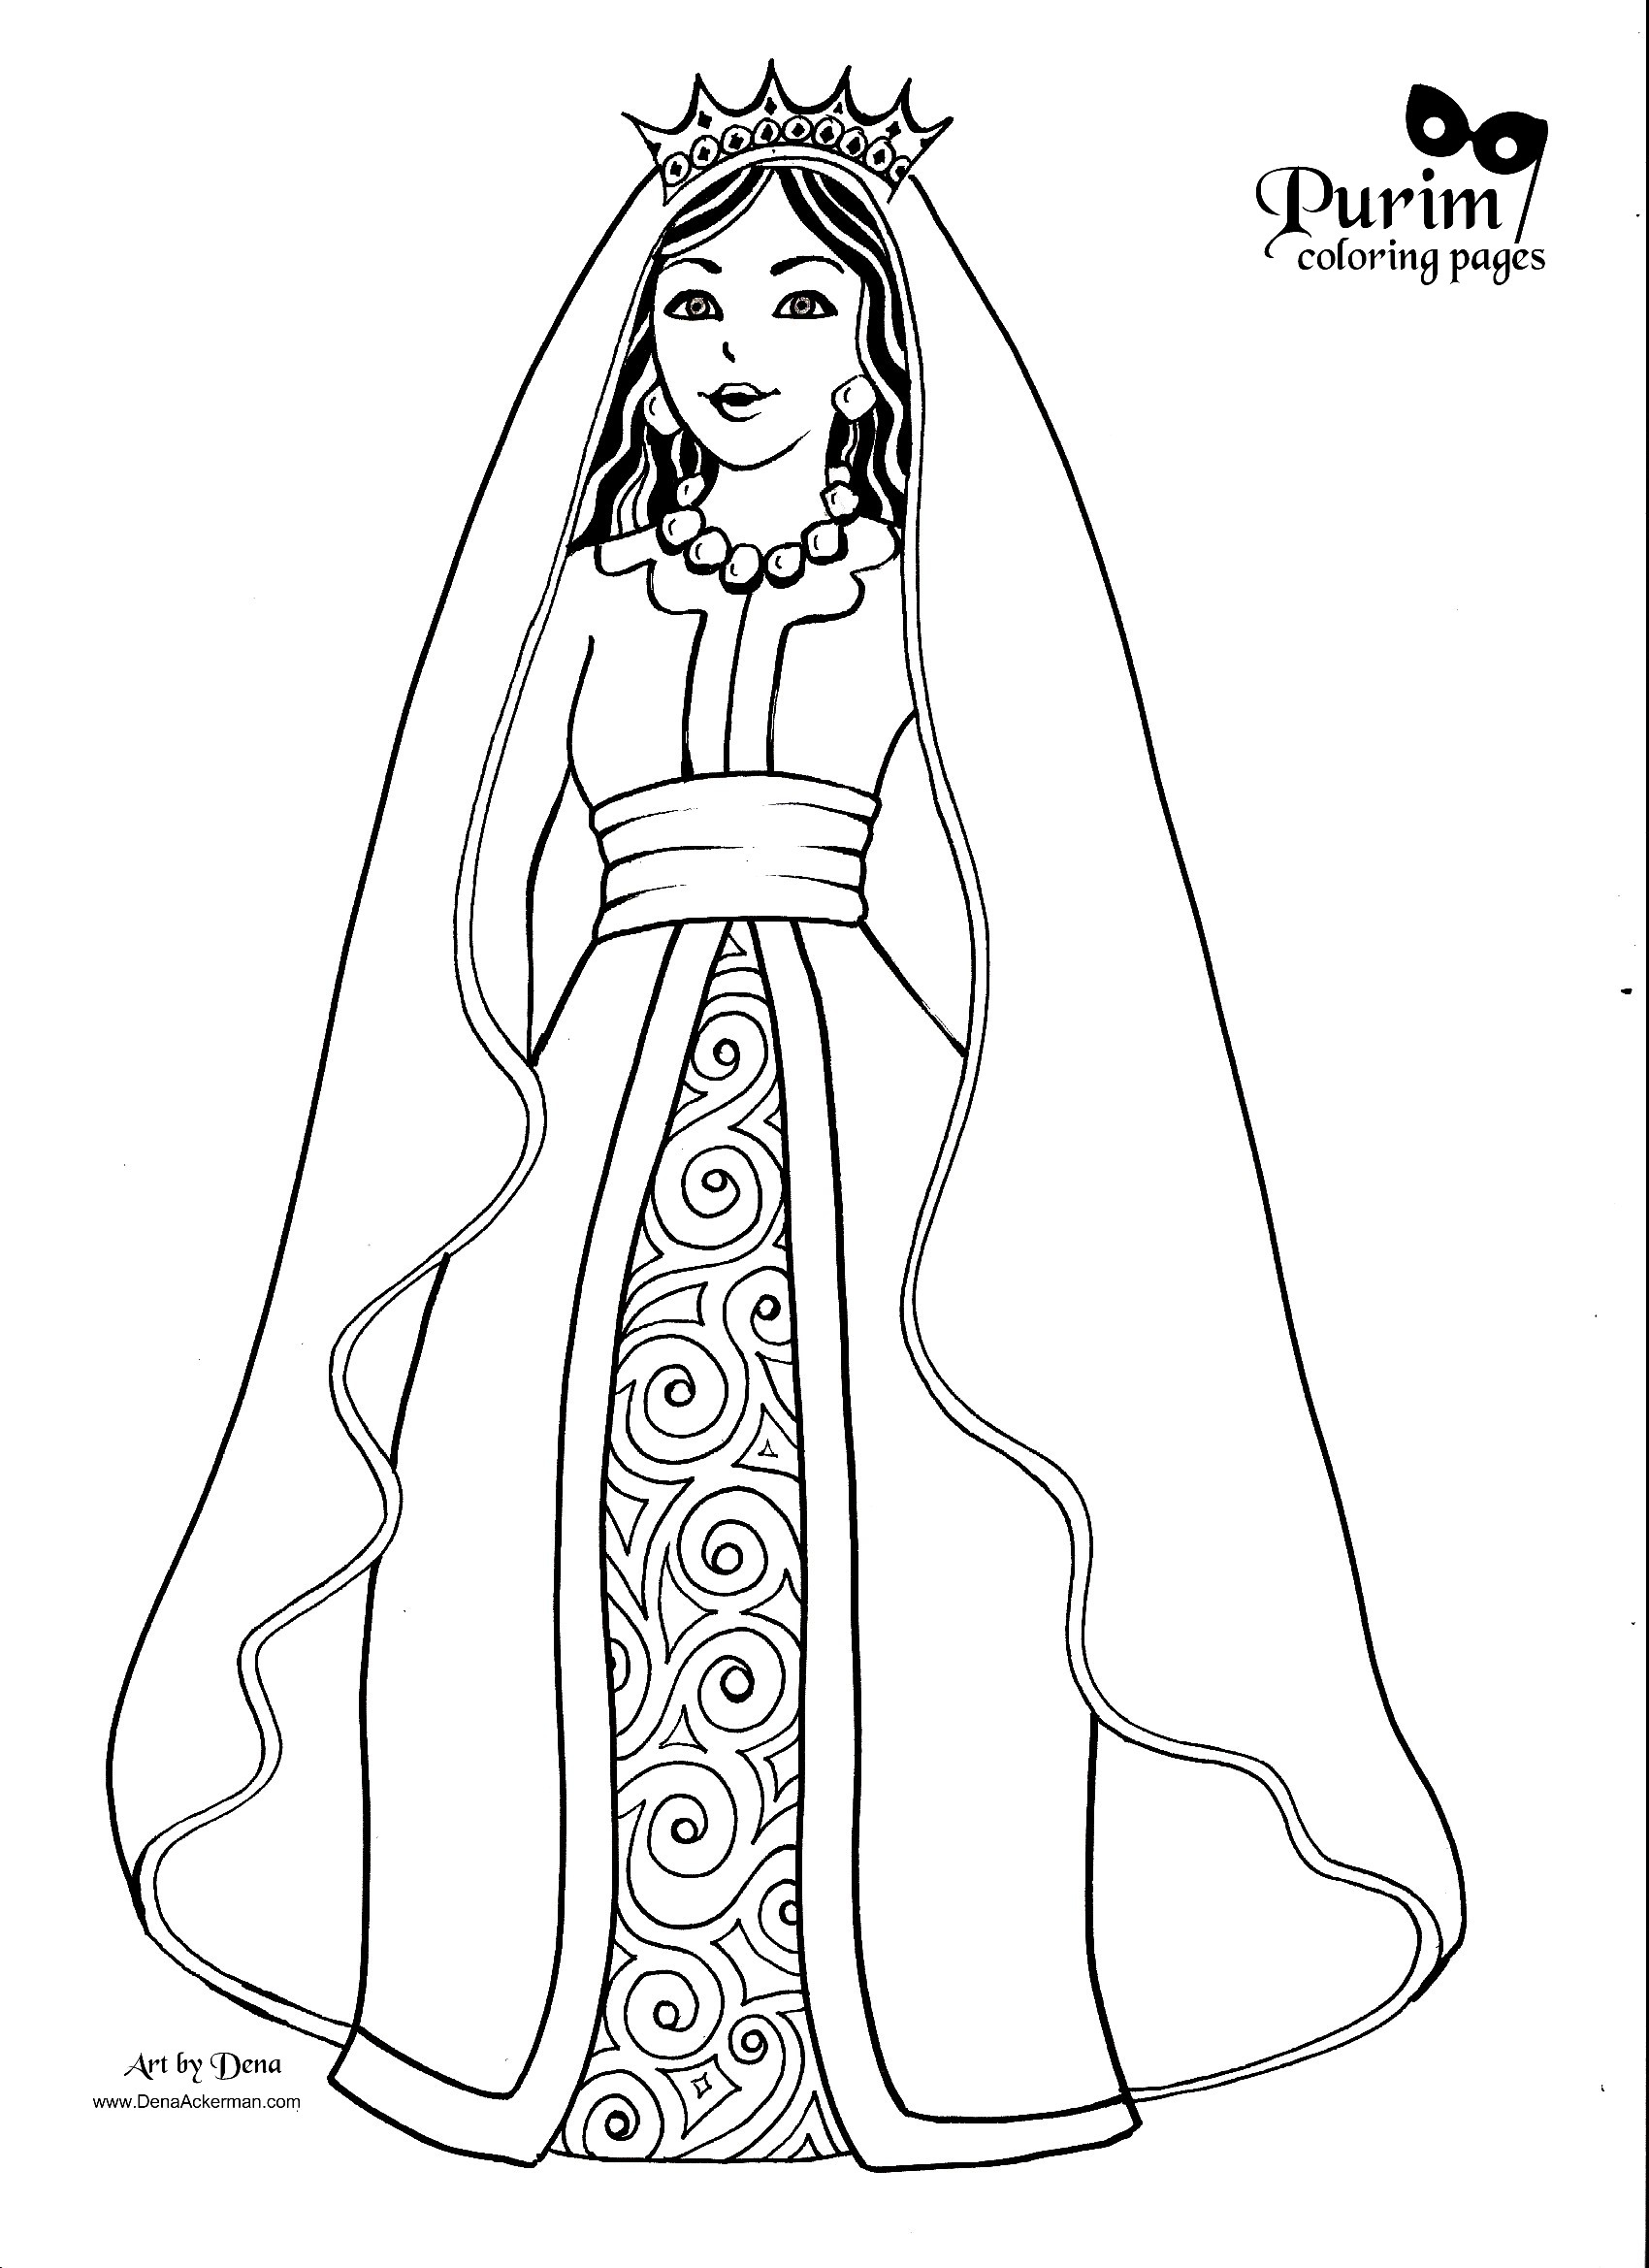 queen characters printable coloring kid craft kits pj mask star wars ship thanksgiving coloring pages Queen Coloring Page